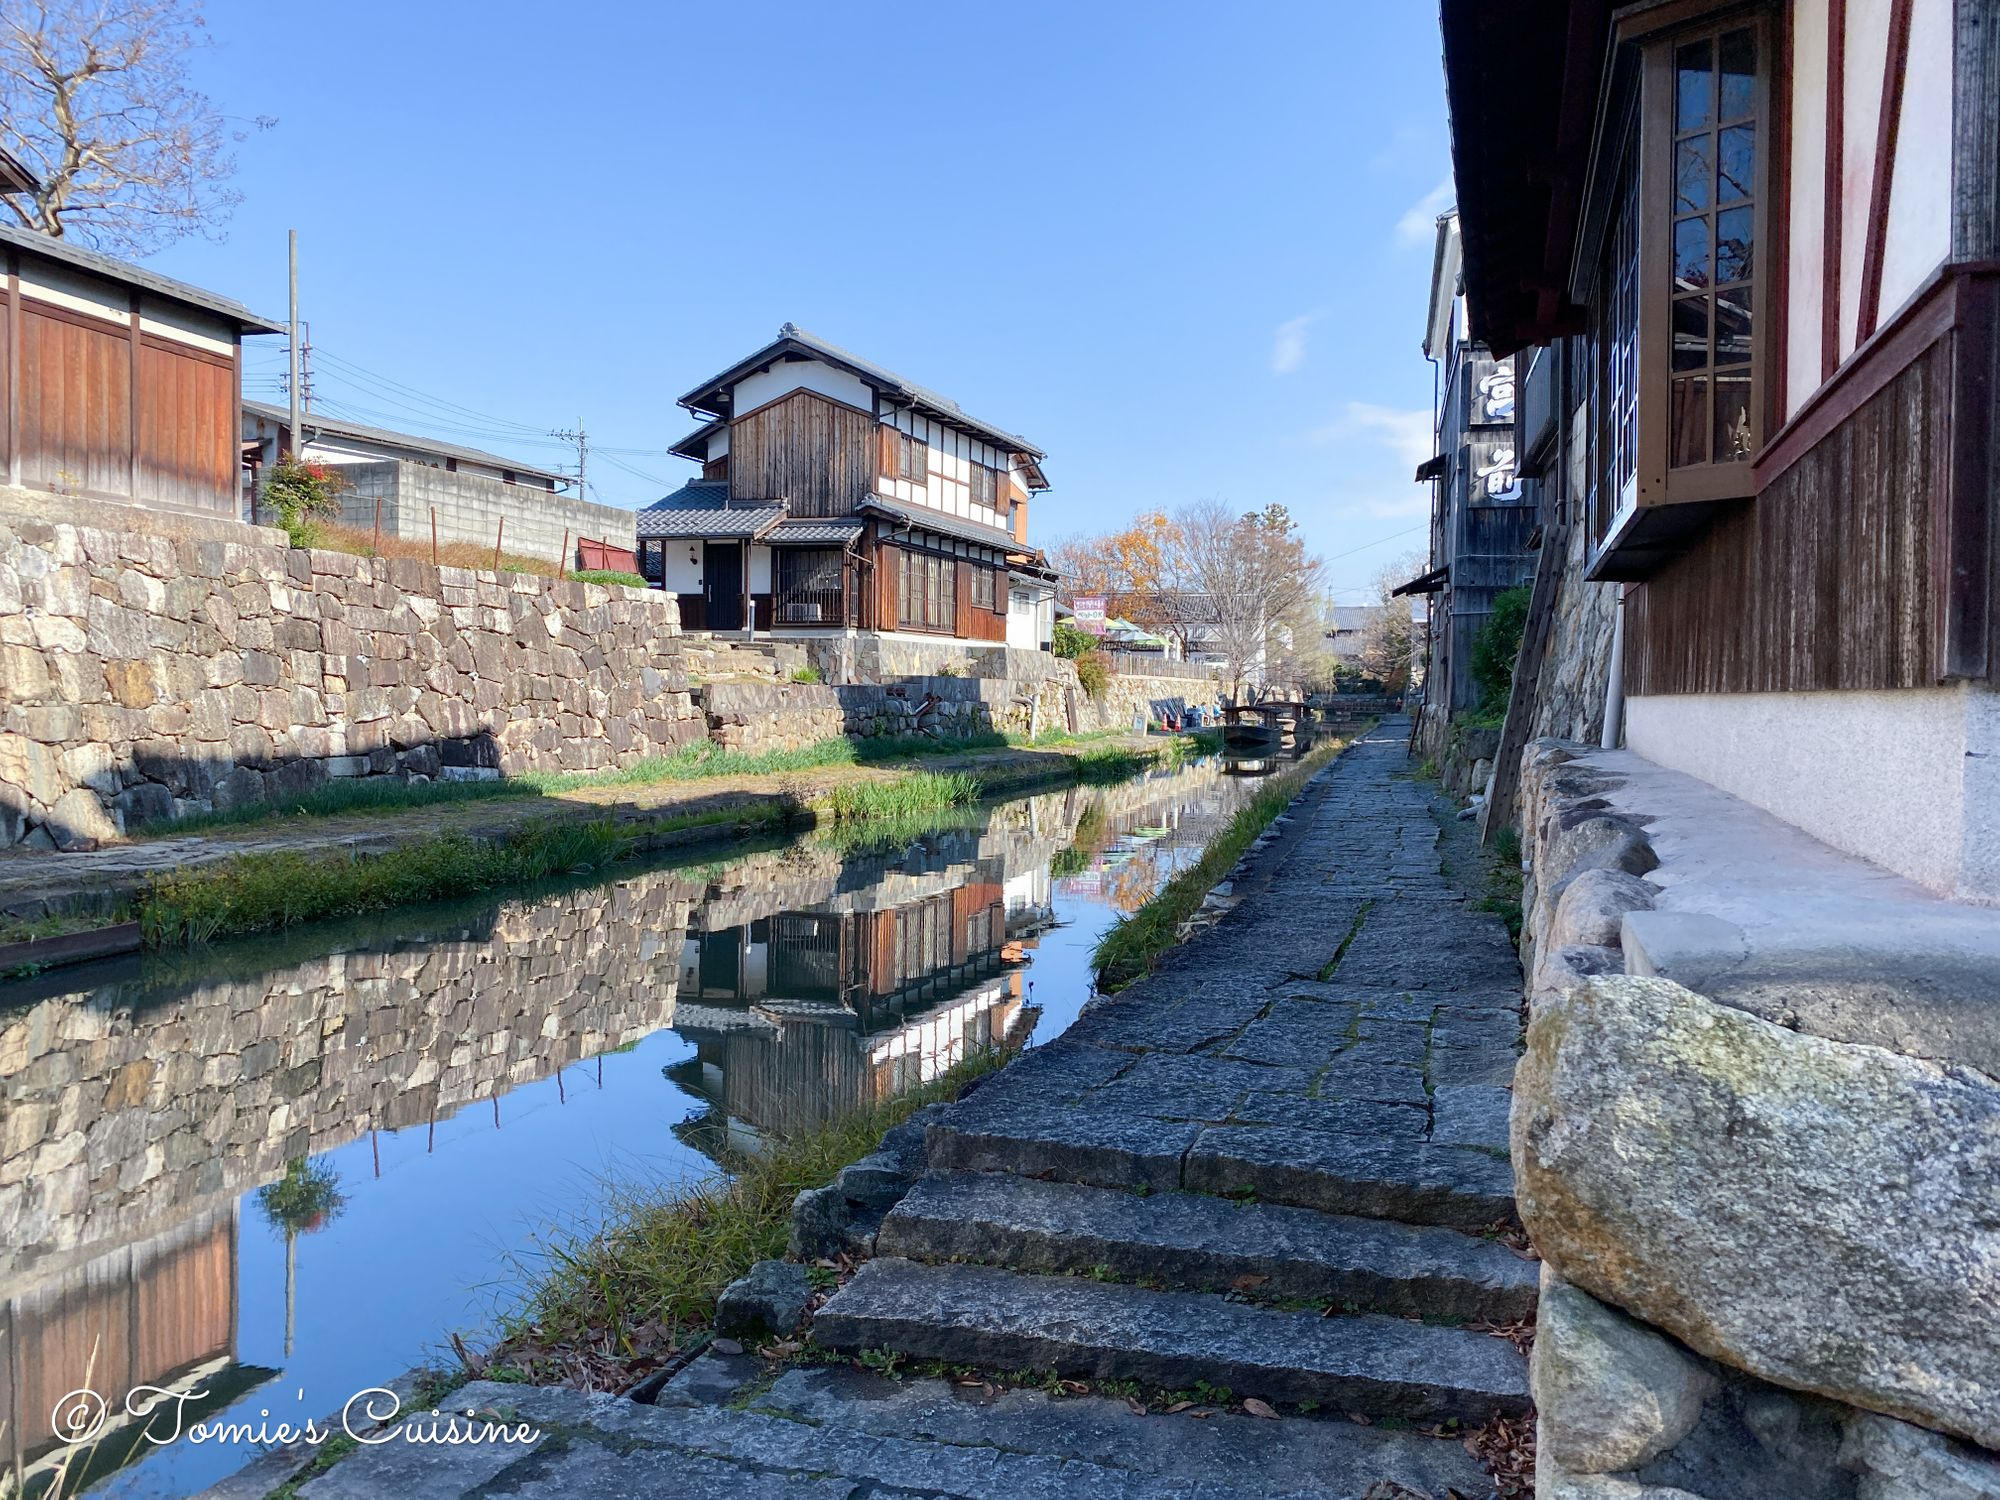 View from the Hachimanbori canal